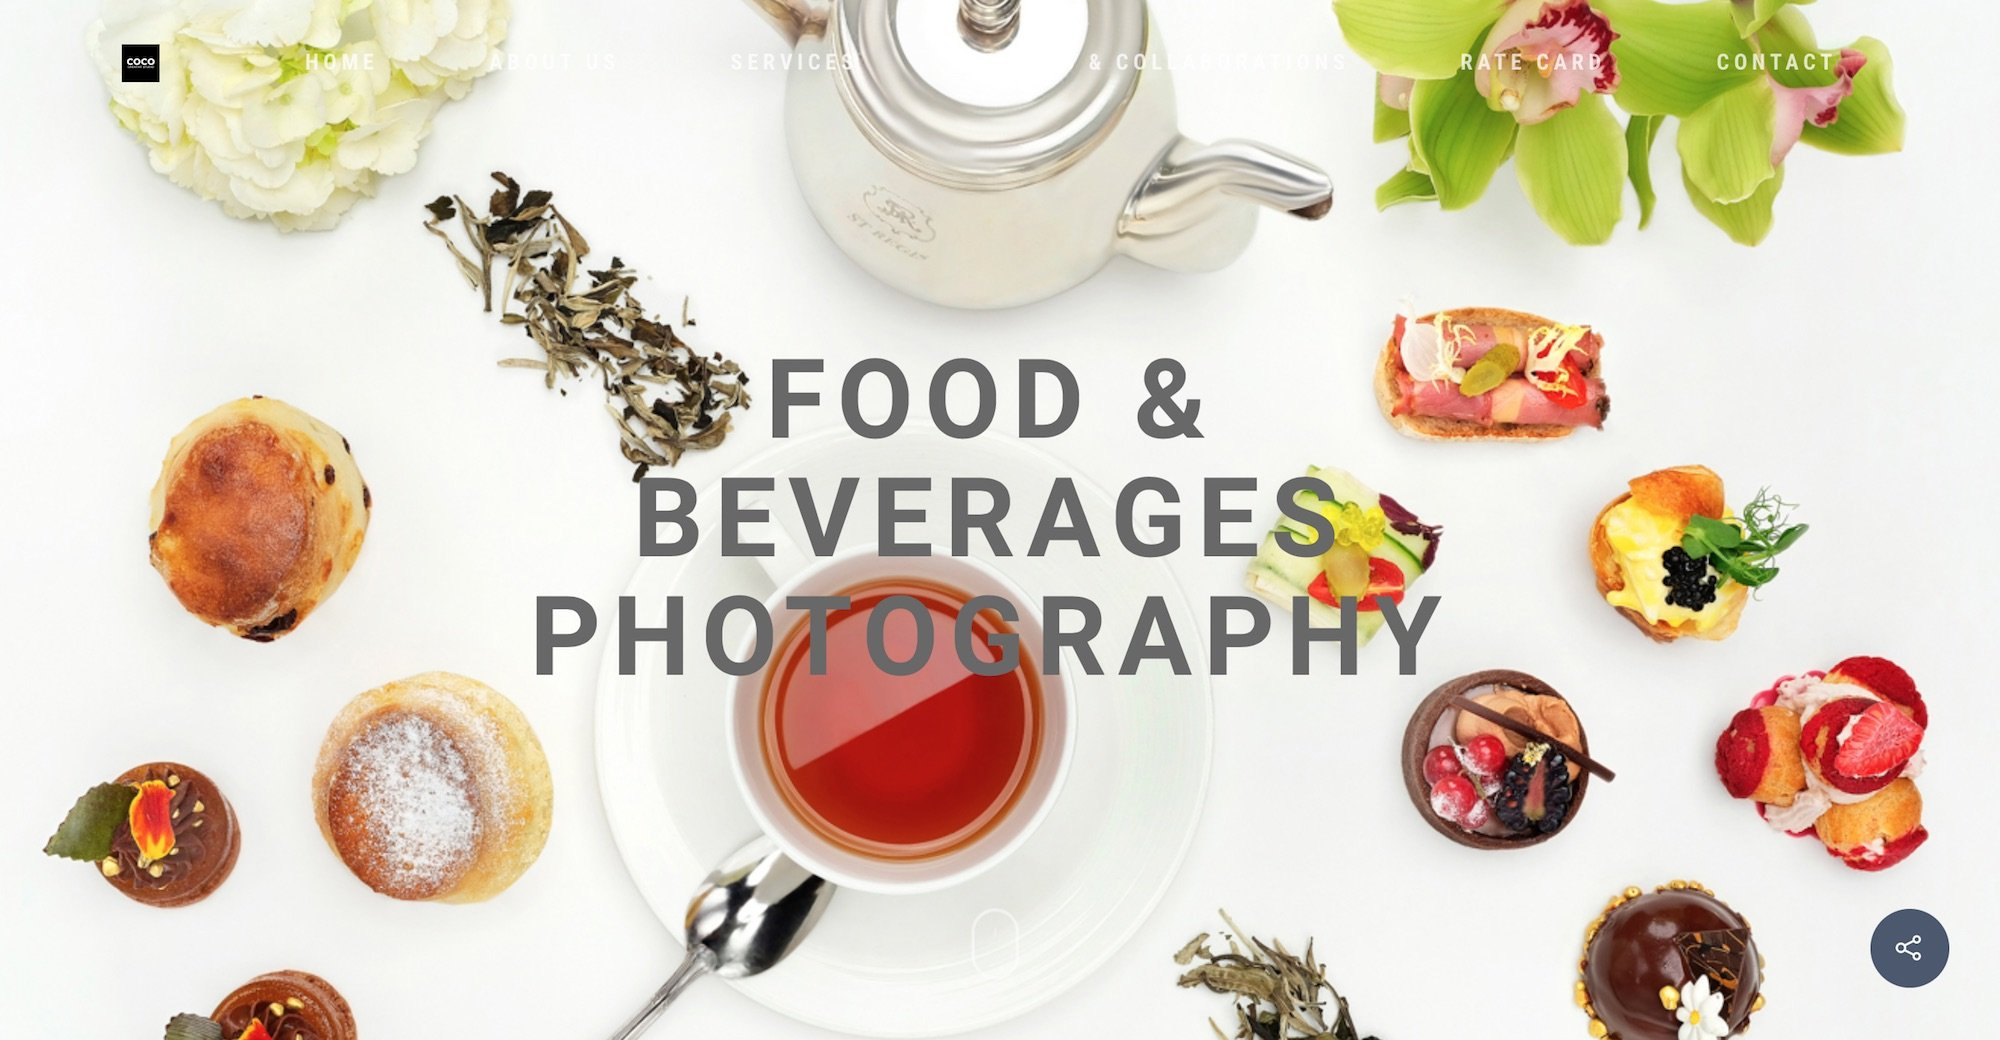 COCO Creative studio photography & videography Singapore - food beverages